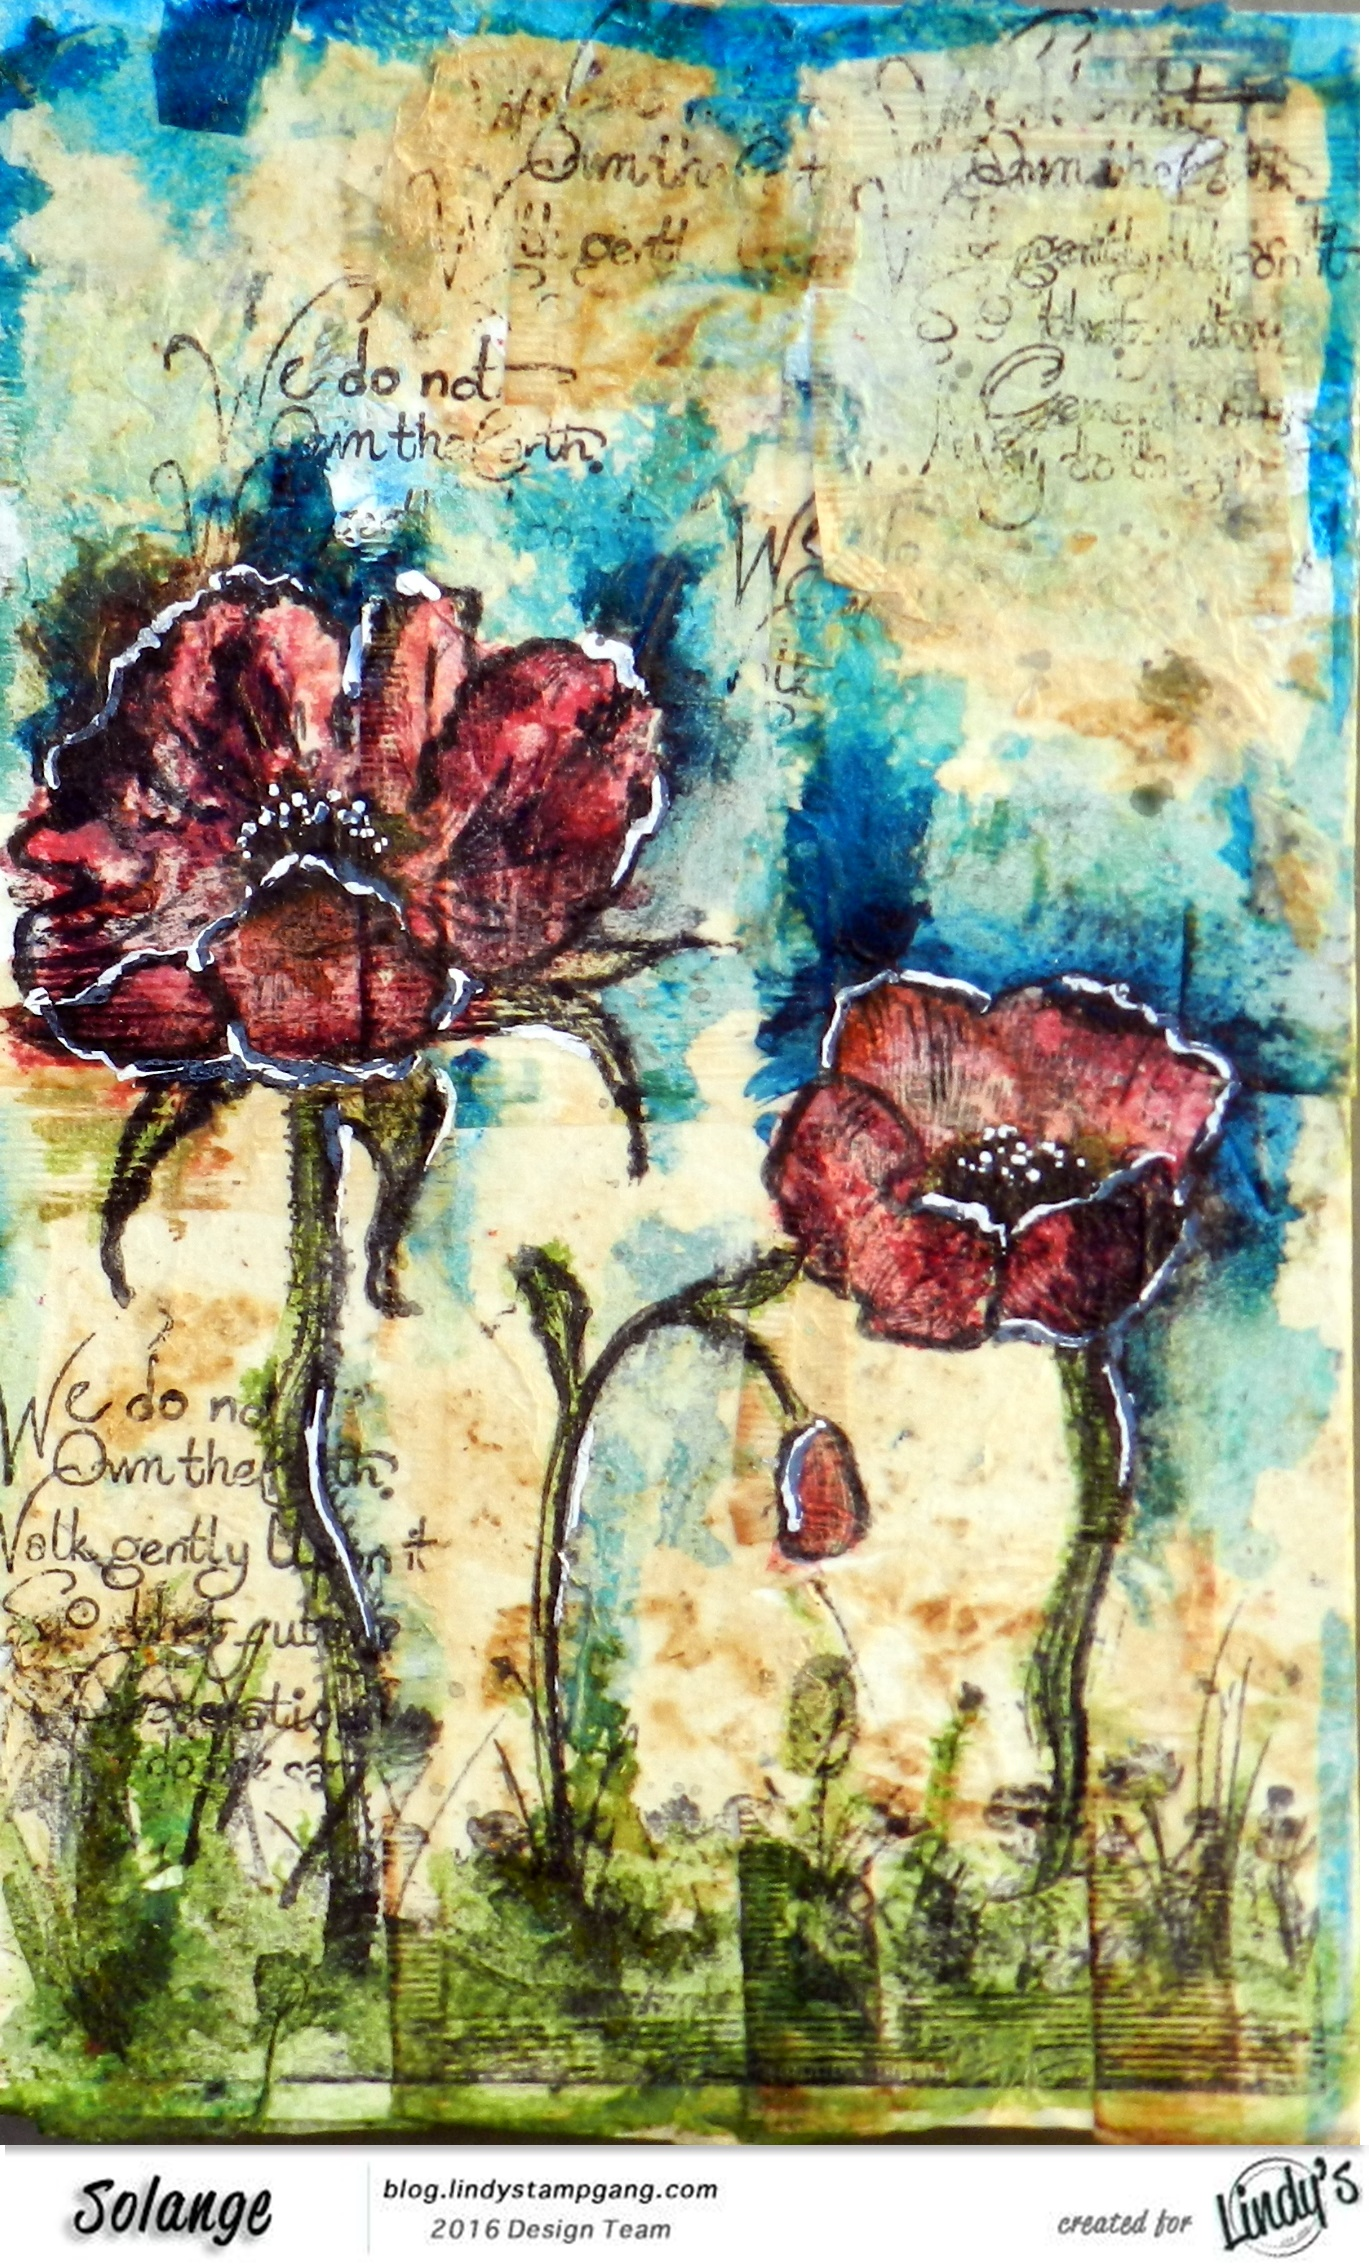 watercolor on tea bag by Solange Marques using Magical Lindy's Stamp Gang -07